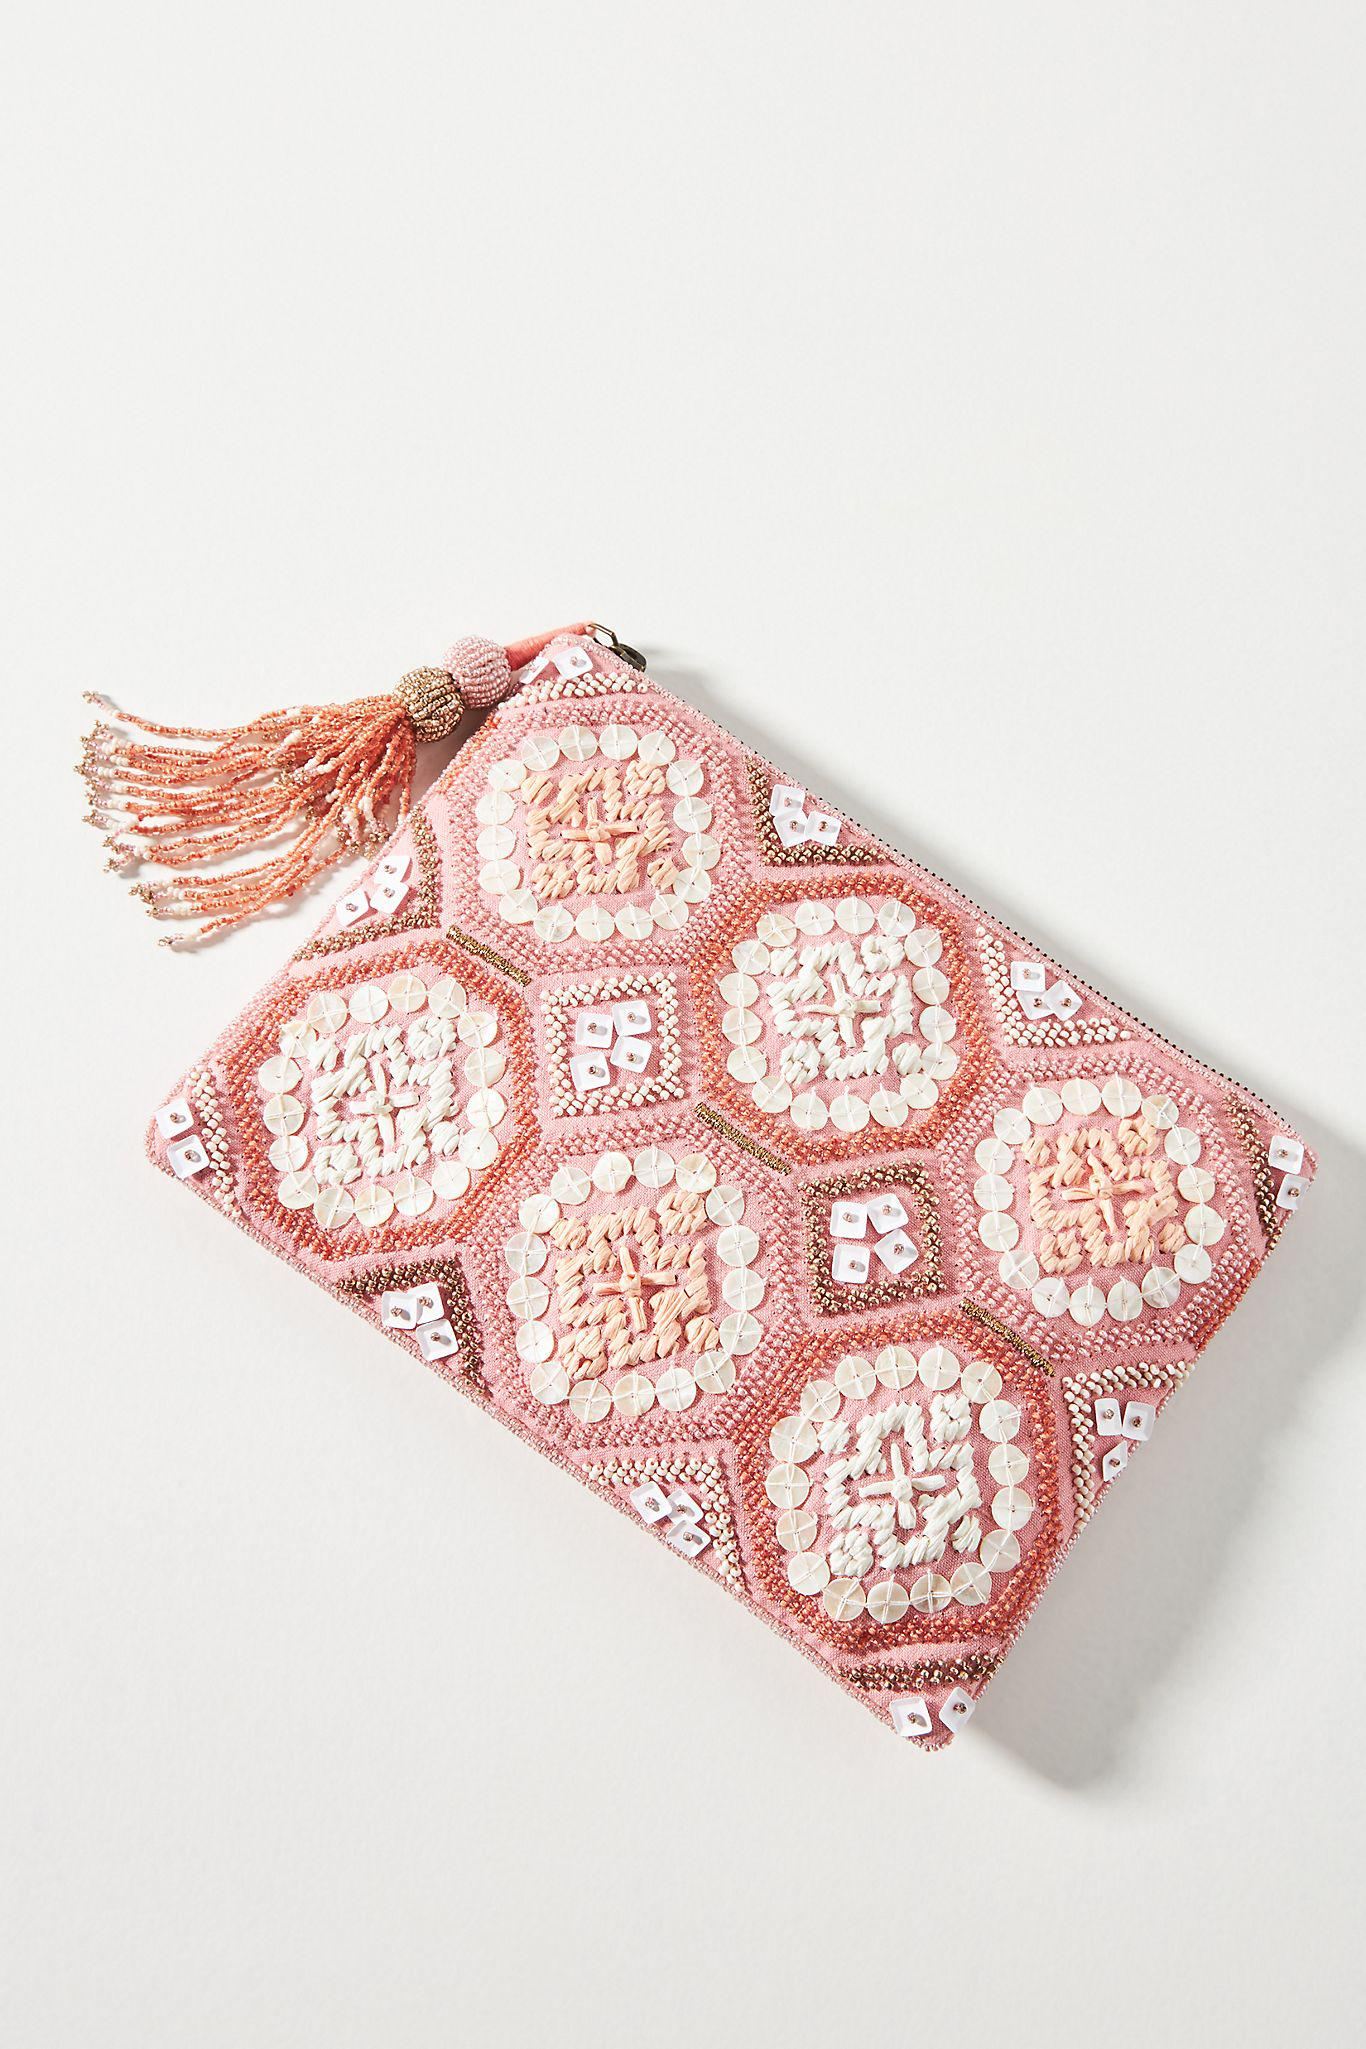 Mosaic Embellished Pouch